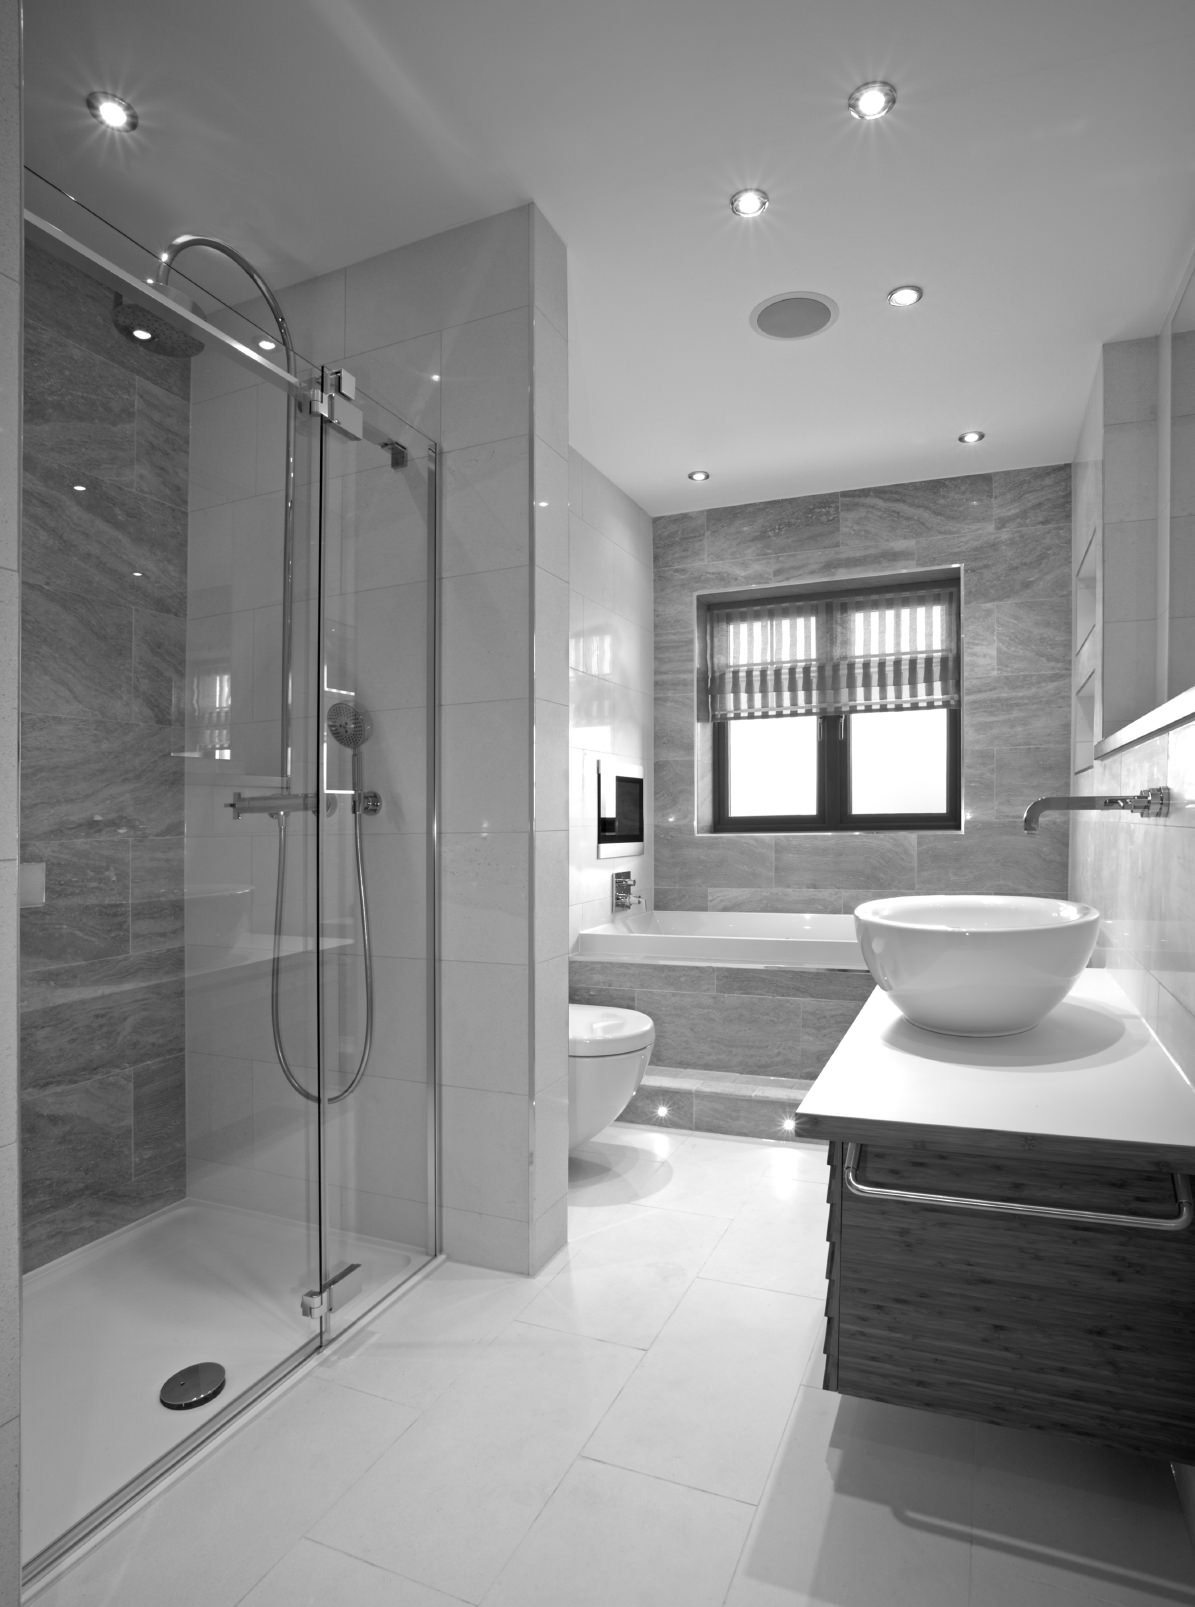 This bathroom has an impressive rain shower, a rounded basin, and a window side tub – what more could you want?